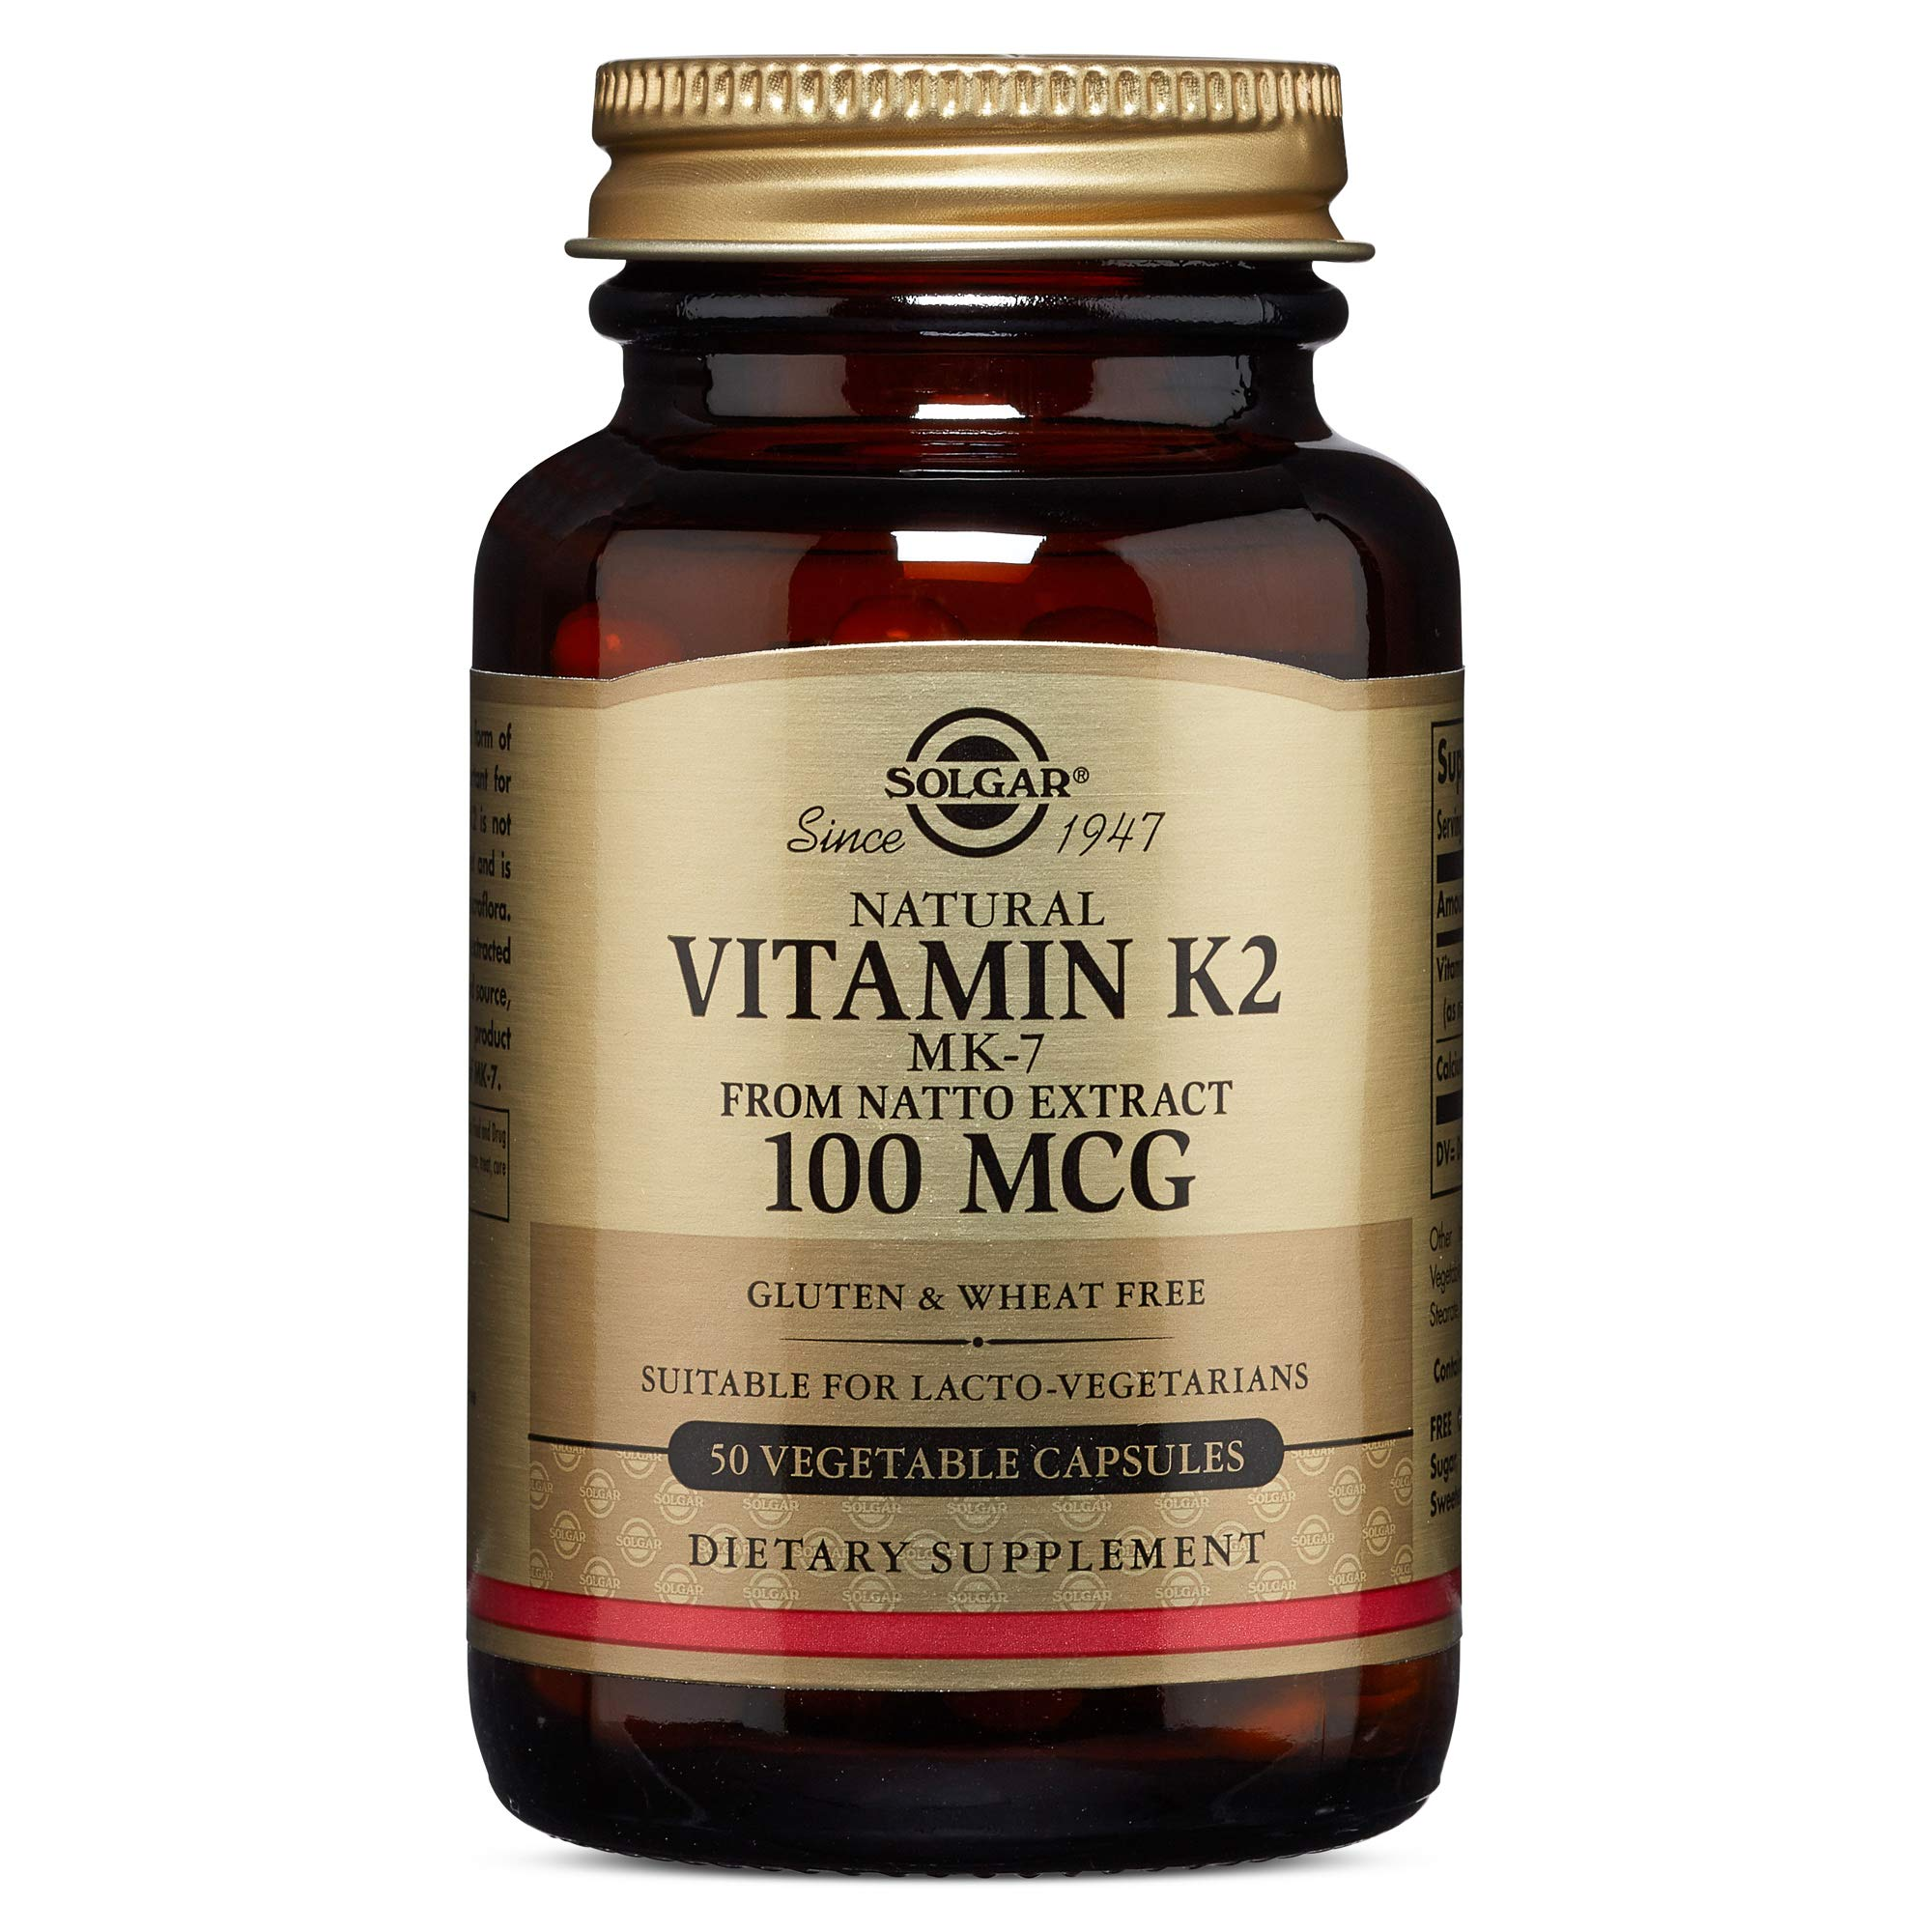 Solgar - Naturally Sourced Vitamin K2 (MK-7) 100 mcg, 50 Vegetable Capsules by Solgar